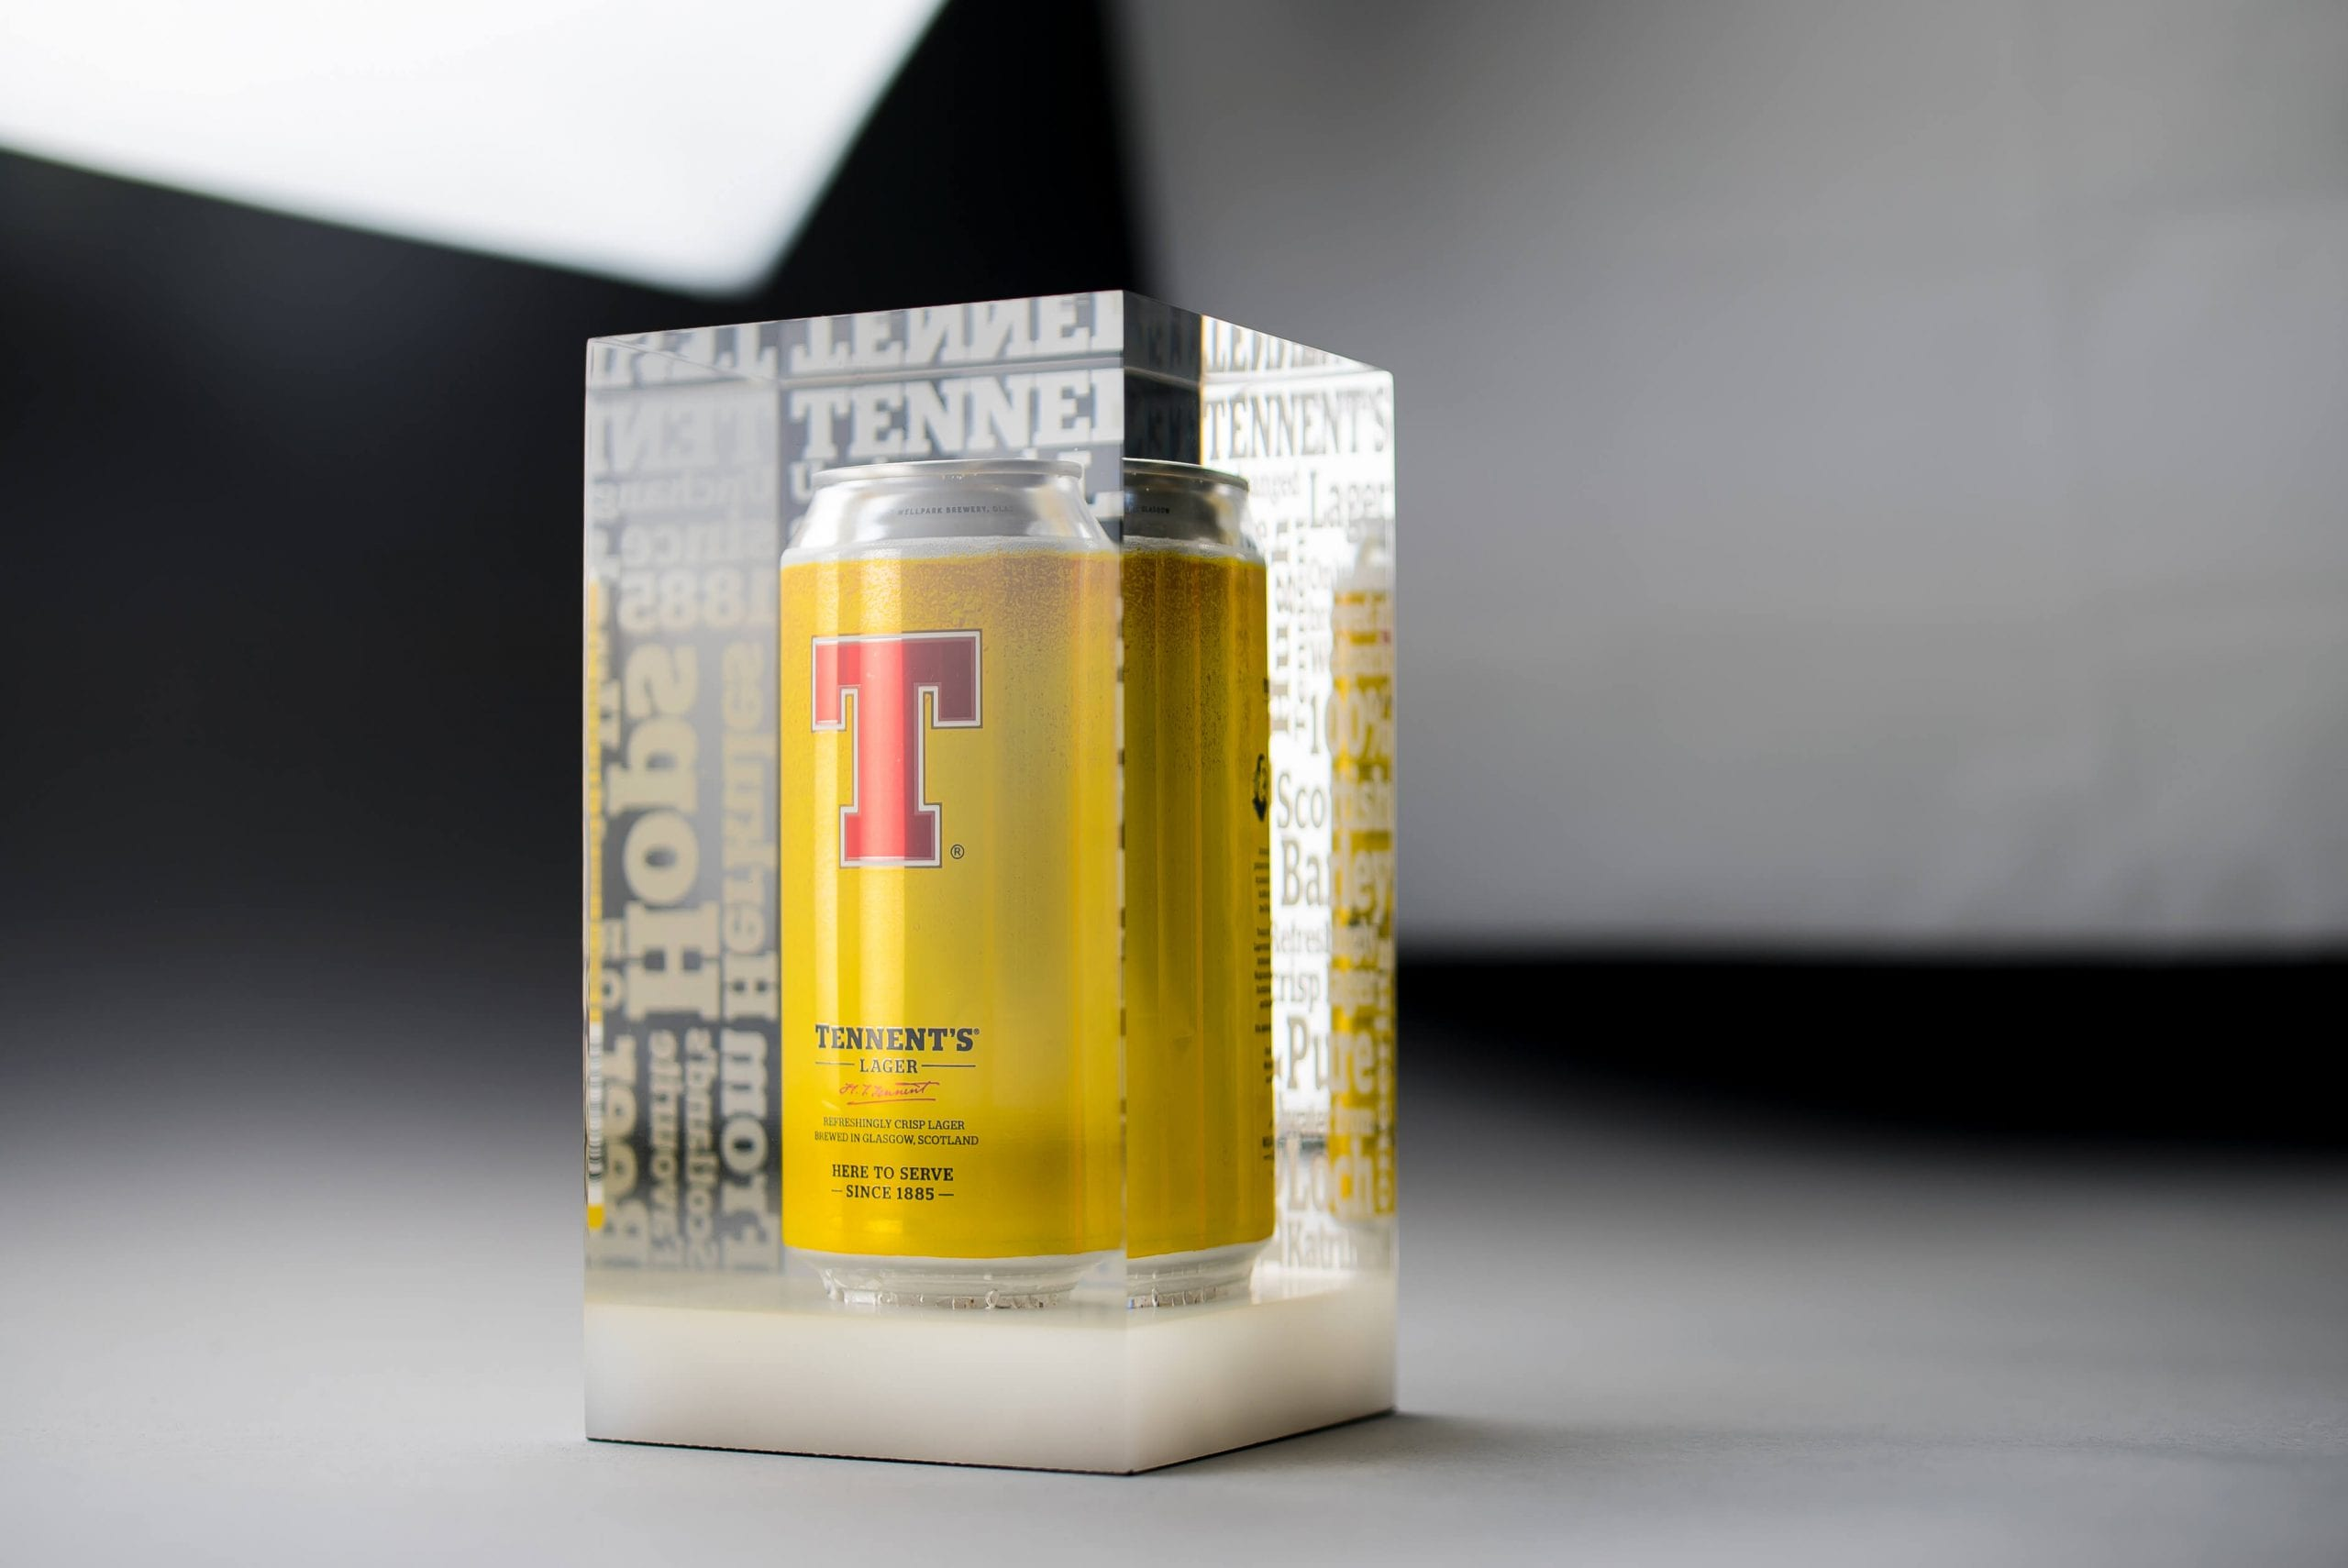 A can of Tennents lager encapsulated in clear acrylic with etched lettering on the back